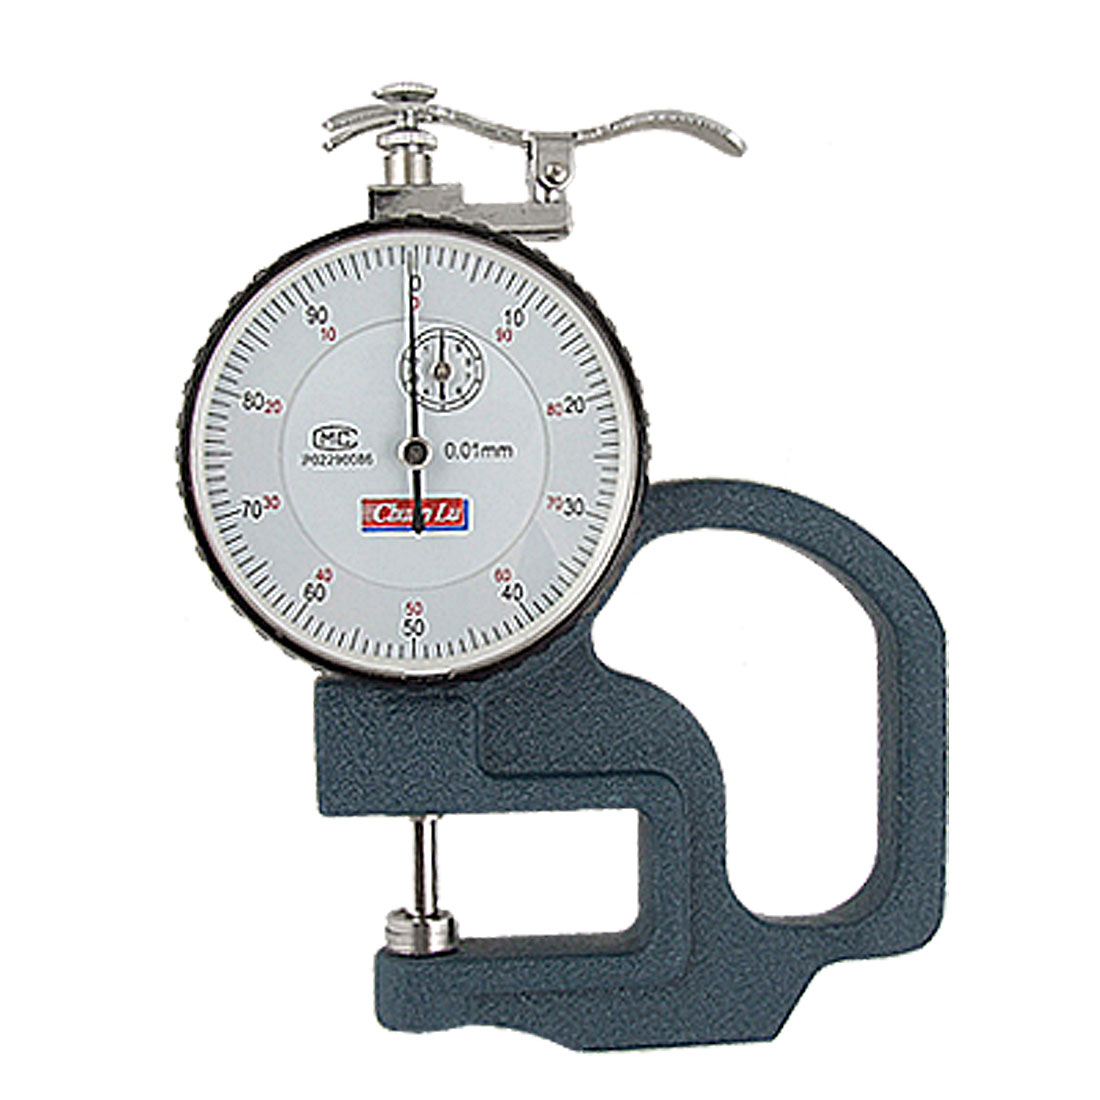 Unique Bargains Round Dial 0-10mm Tri Color Handheld Thickness Gauge by Unique-Bargains